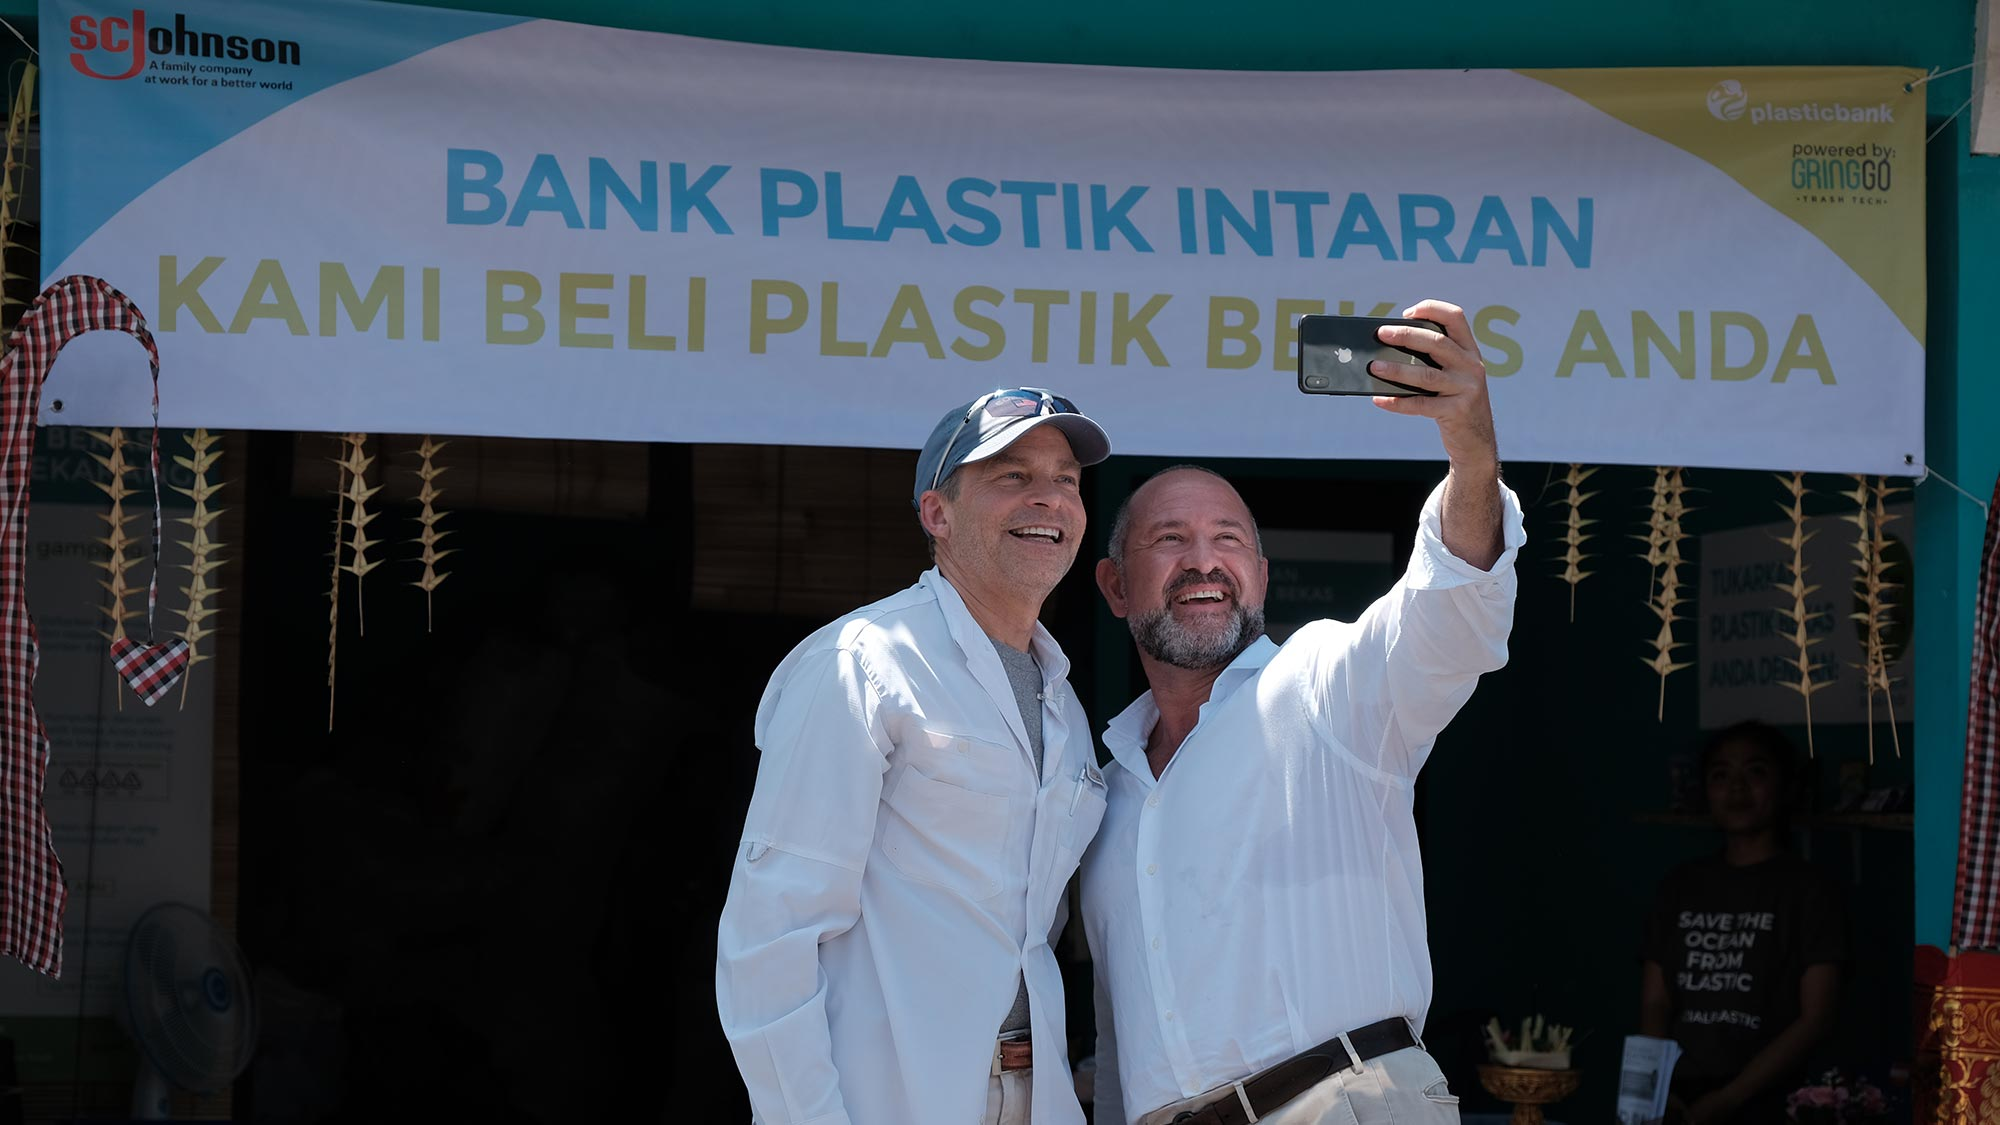 Fisk Johnson with David Katz at Plastic Bank recycling center opening